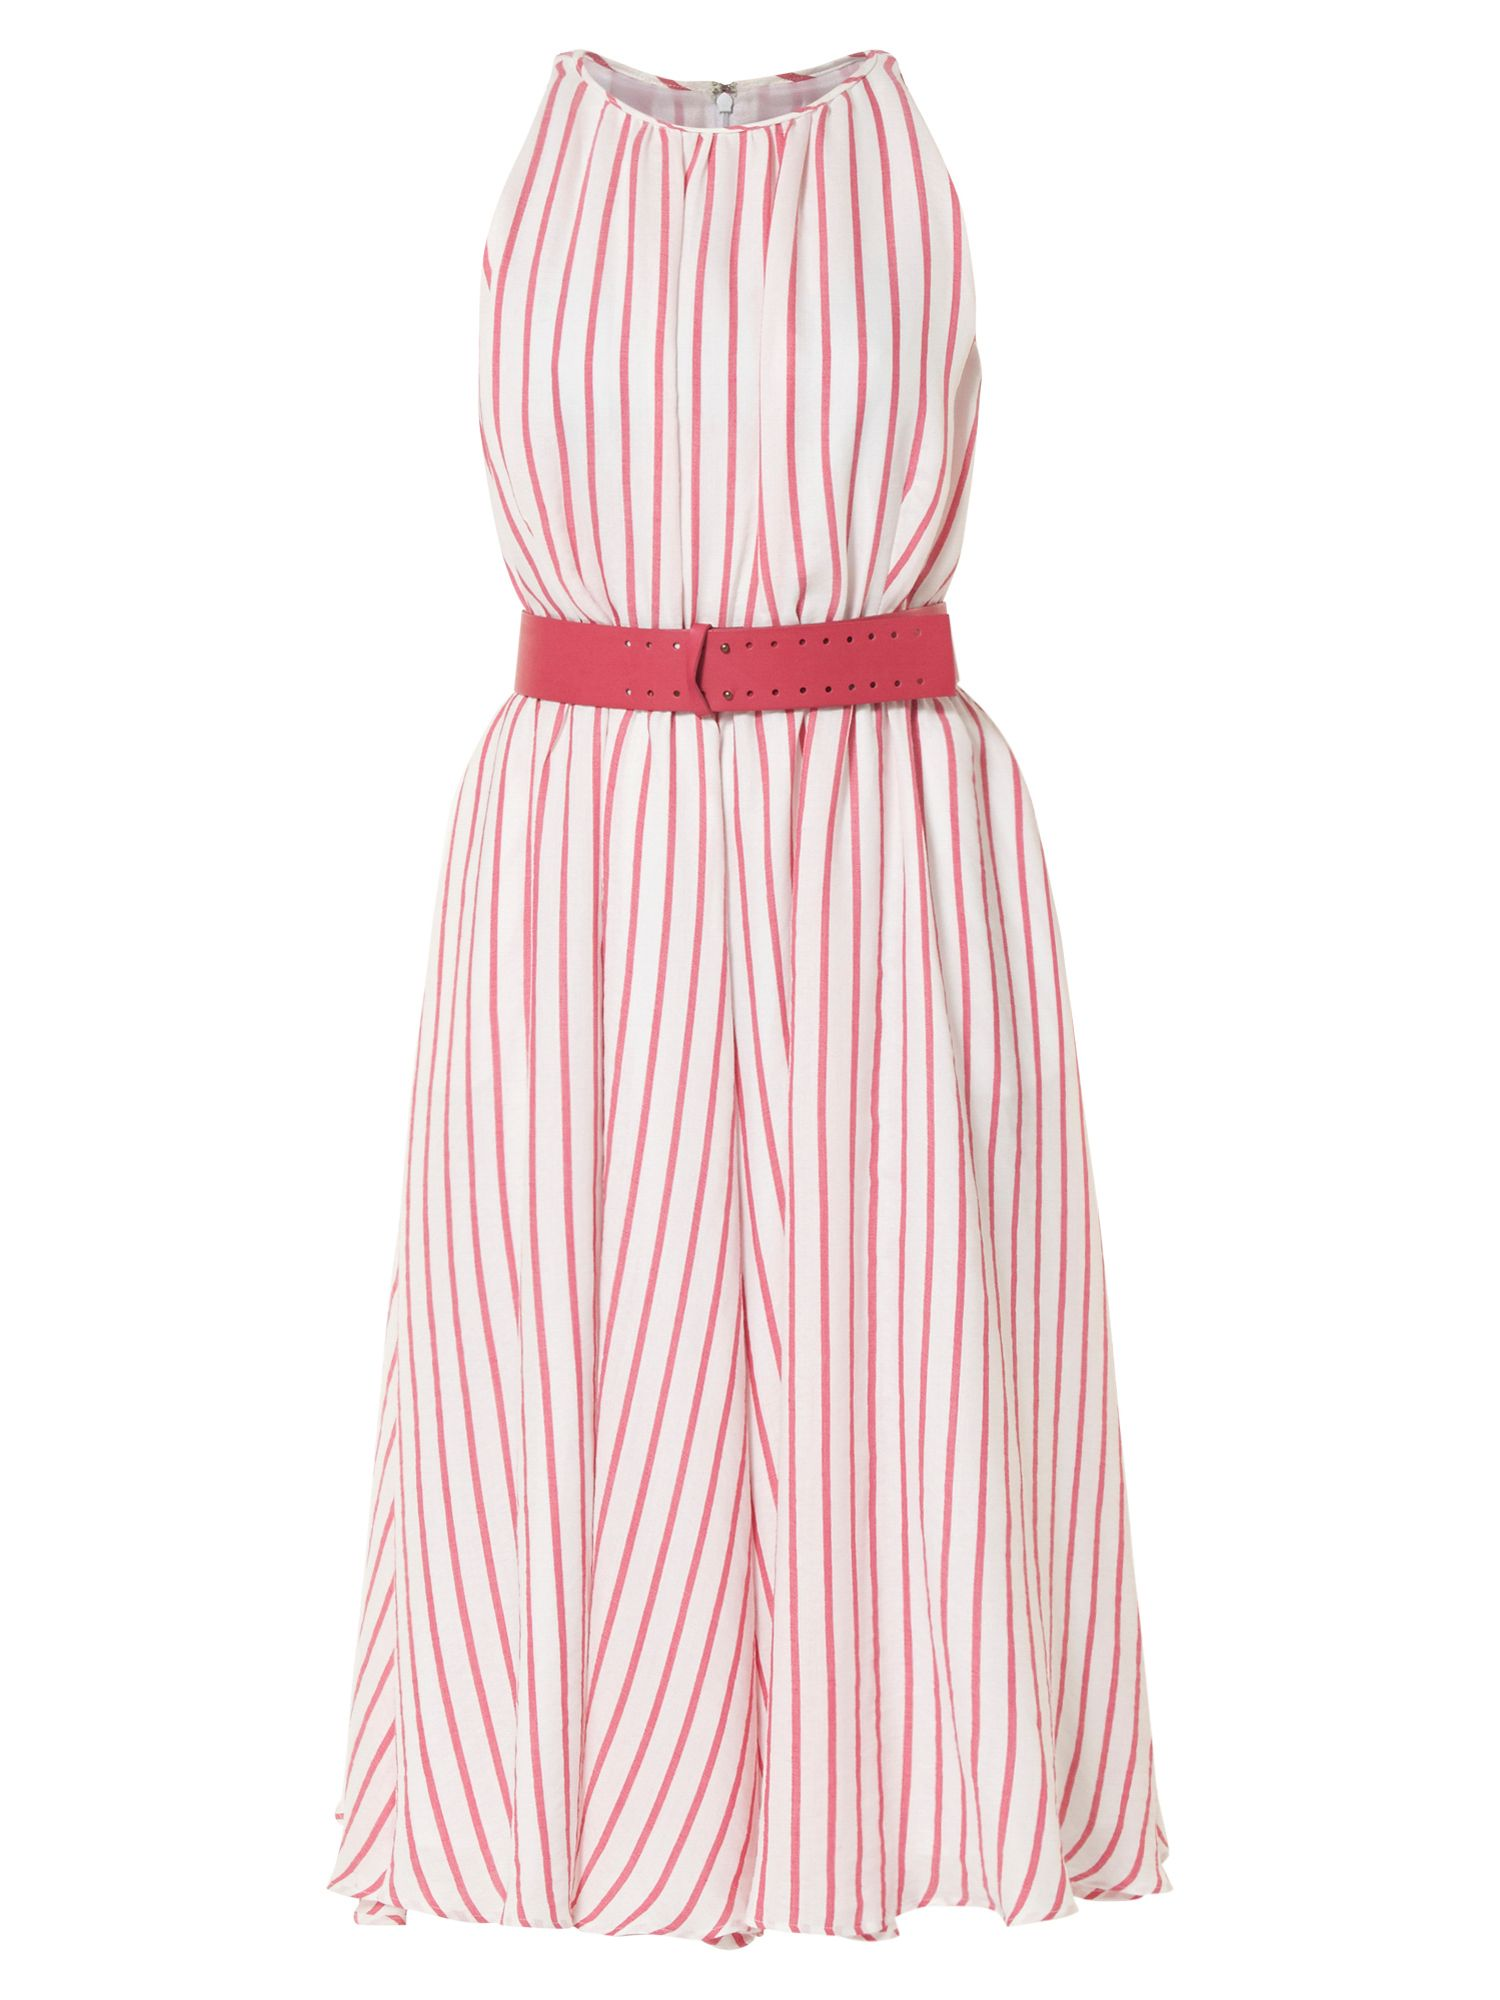 Helen McAlinden Alva Dress, Pink